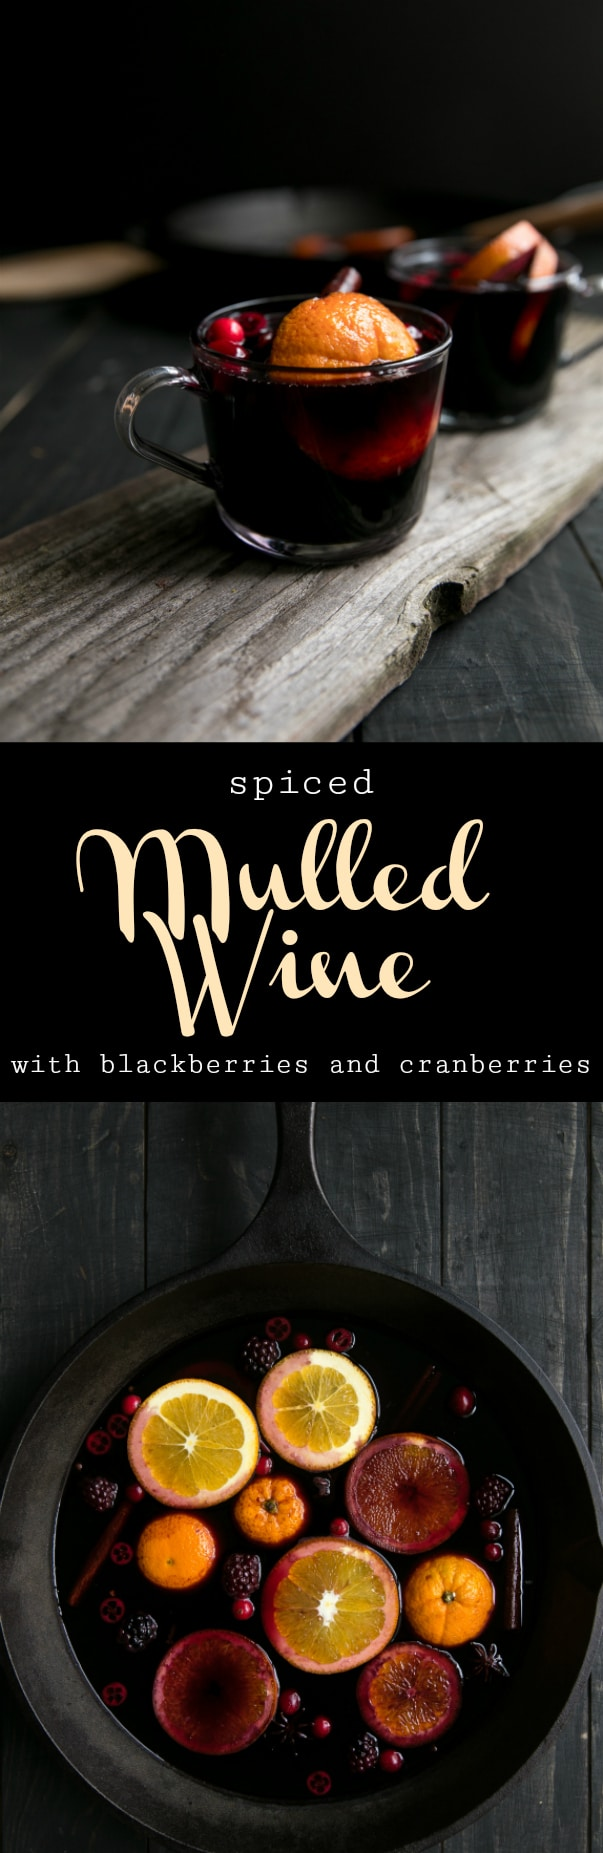 Spiced Mulled Wine with Cranberries and Blackberries #wine #mulledwine